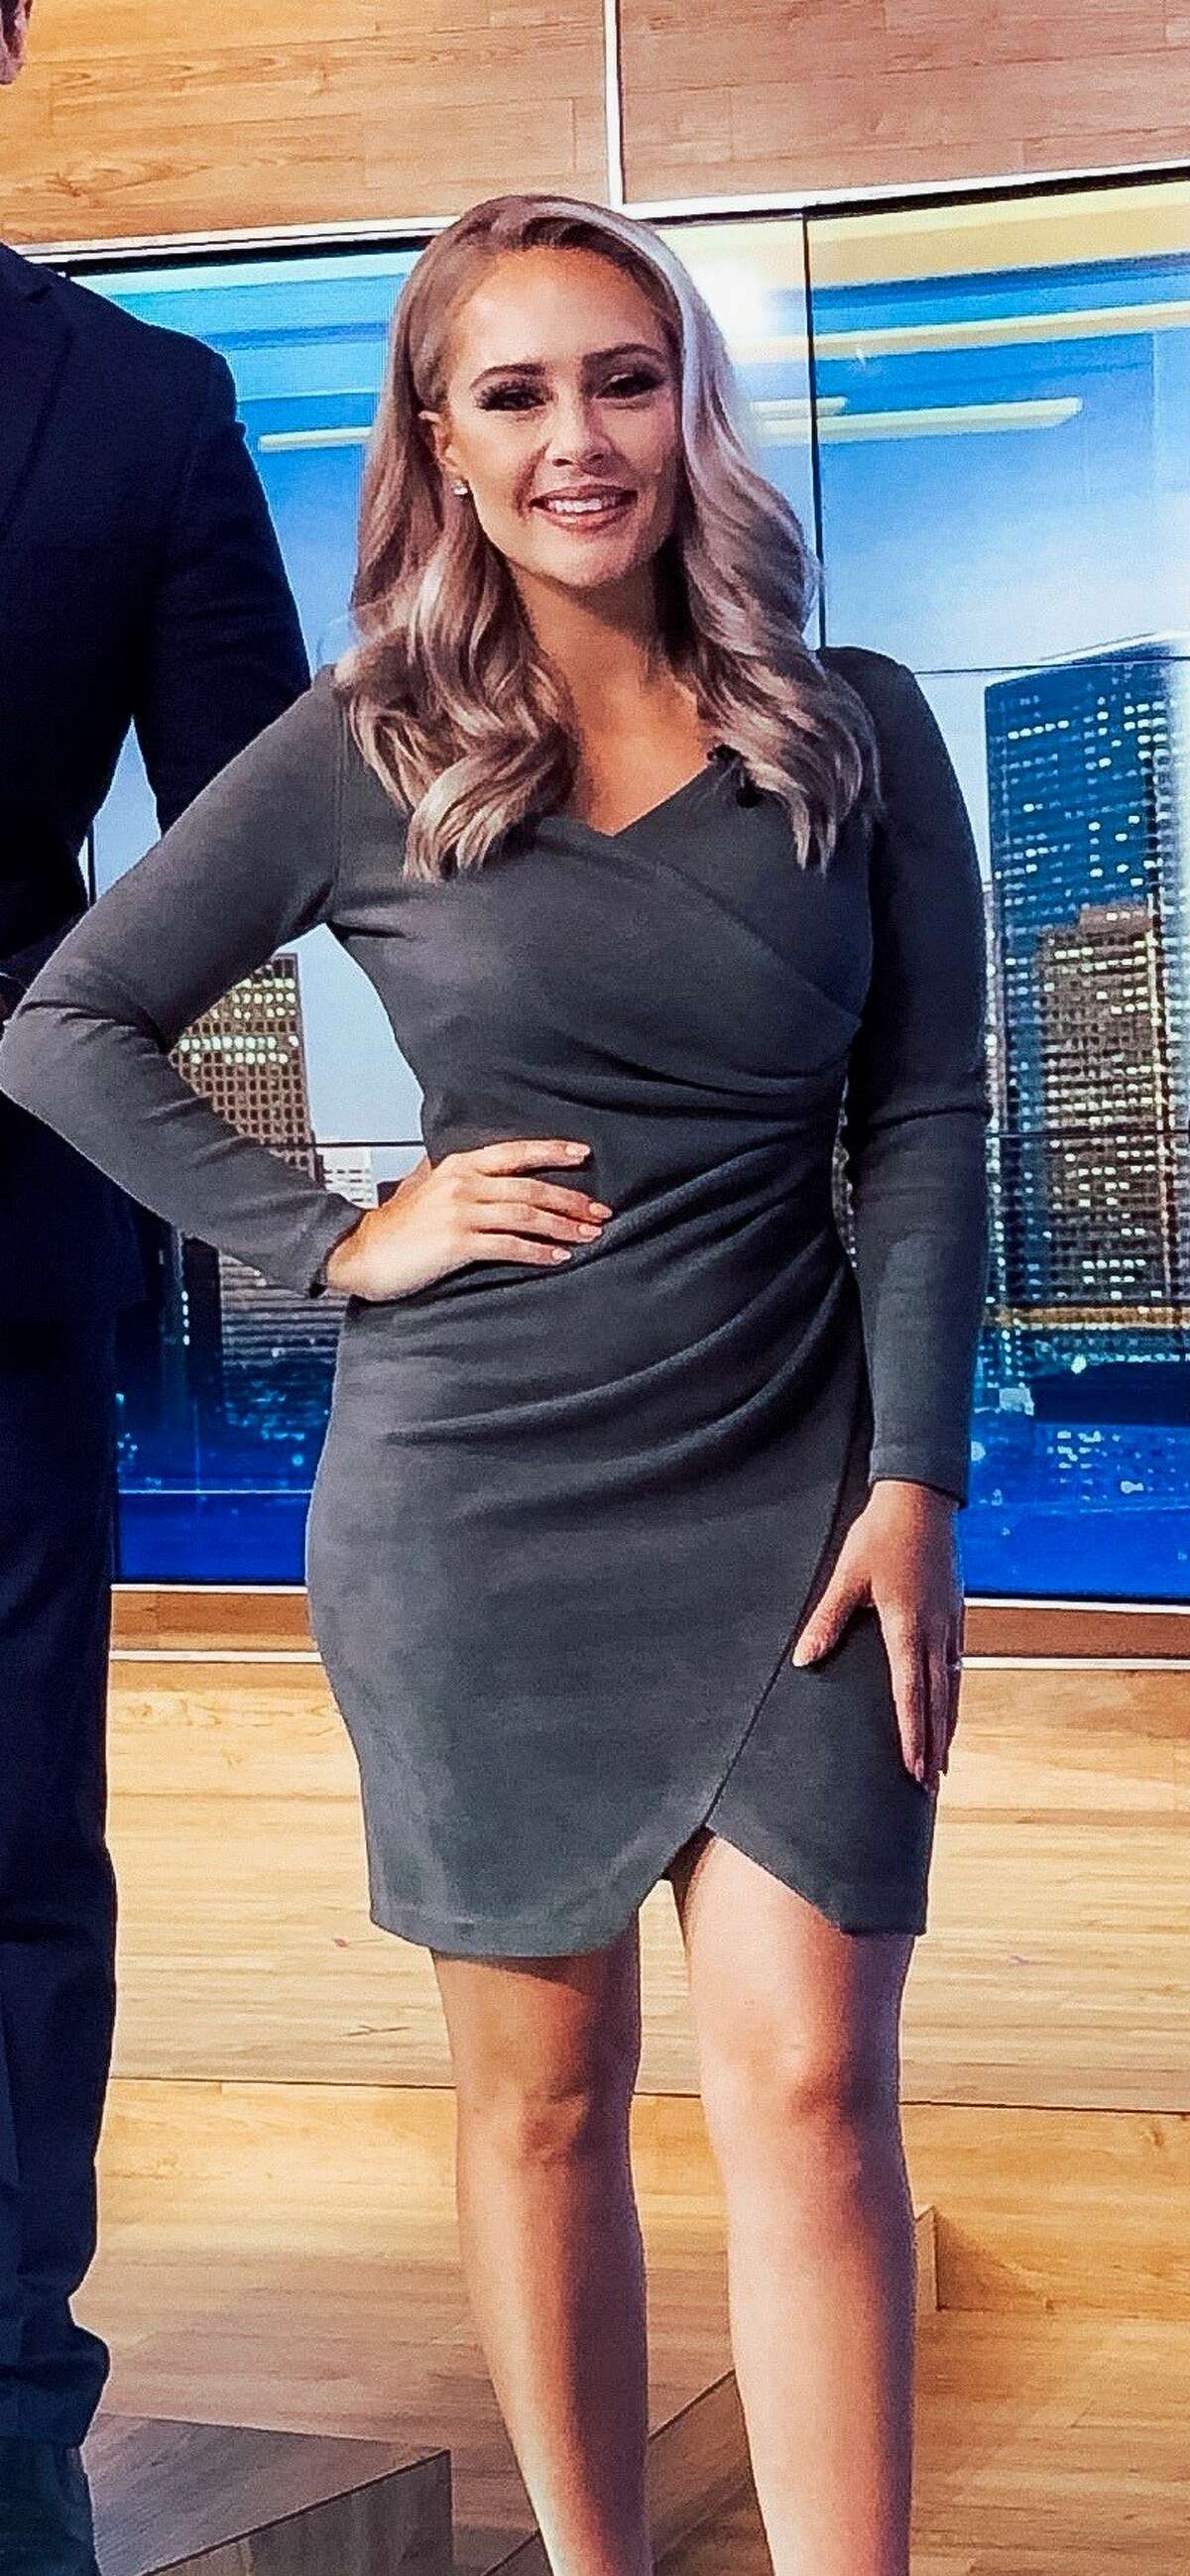 Brheanna BerryReporter, KTRKHow she stays fit/promotes fitness, according to Becic: - She runs with her dogs - She does weight training - She enjoys hiking - She works out at the gym daily - She does HIIT (high-intensity interval training) workouts